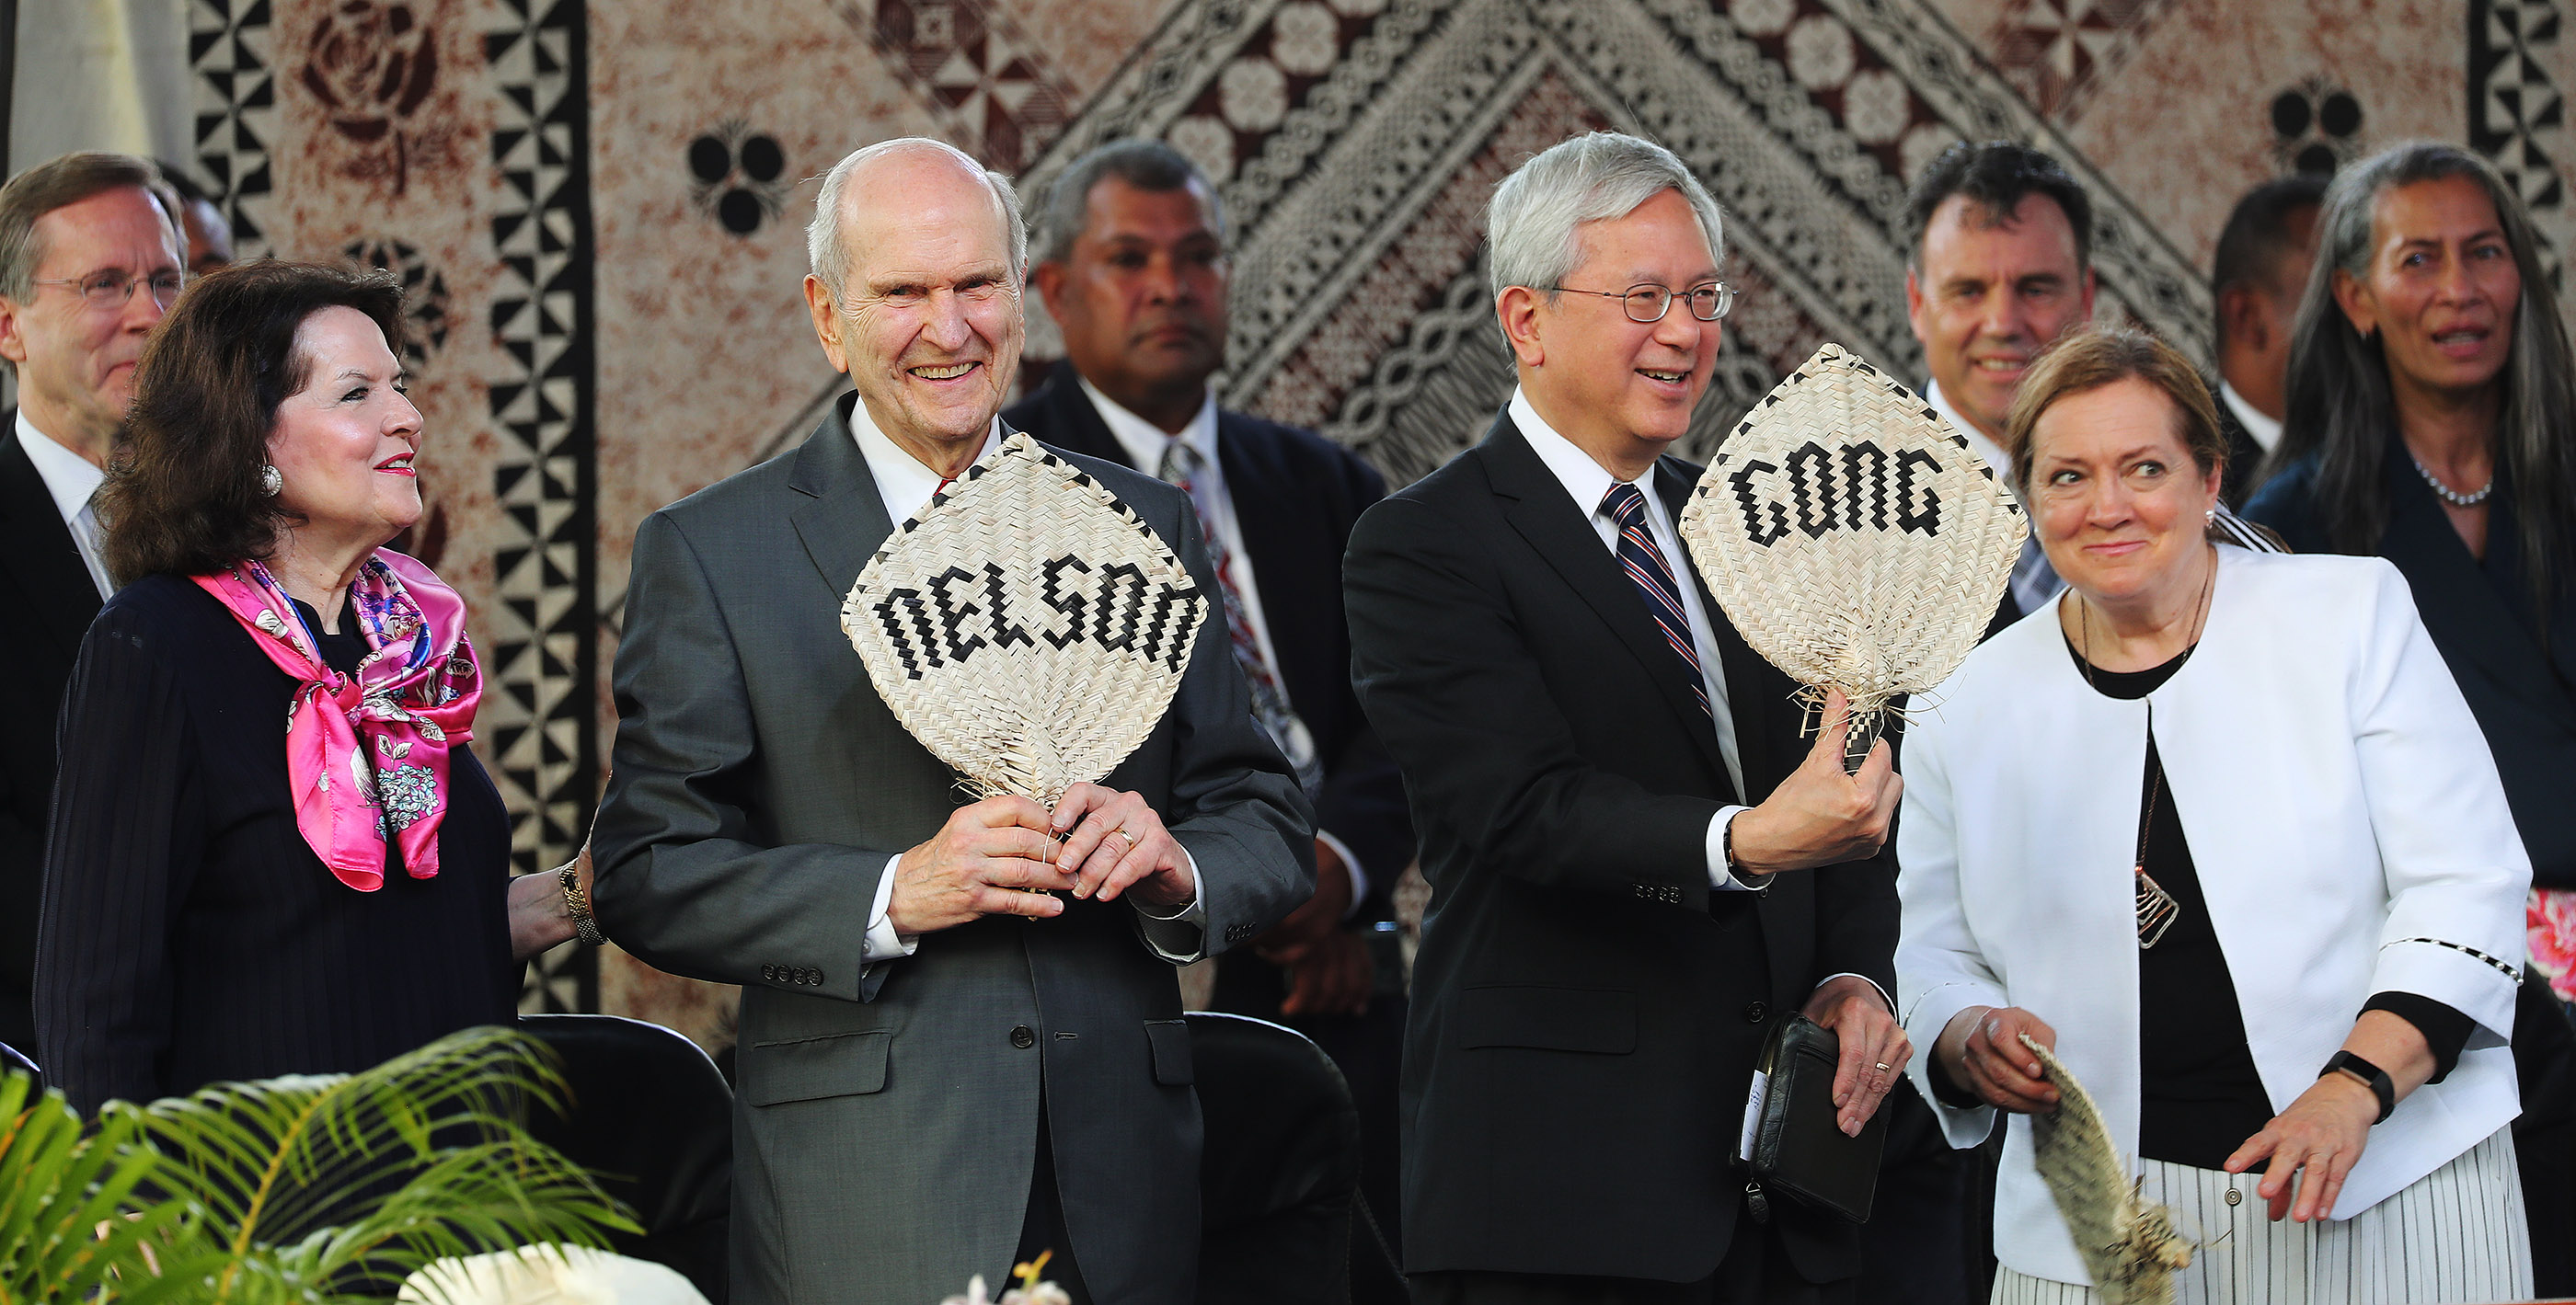 President Russell M. Nelson of The Church of Jesus Christ of Latter-day Saints and his wife Sister Wendy Nelson and Elder Elder Gerrit W. Gong, of The Church of Jesus Christ of Latter-day Saints' Quorum of the Twelve Apostles and his wife Sister Suan Gong hold fans with their names on them during a devotional at Ratu Cakobau stadium in Nausori, Fiji on May 22, 2019.